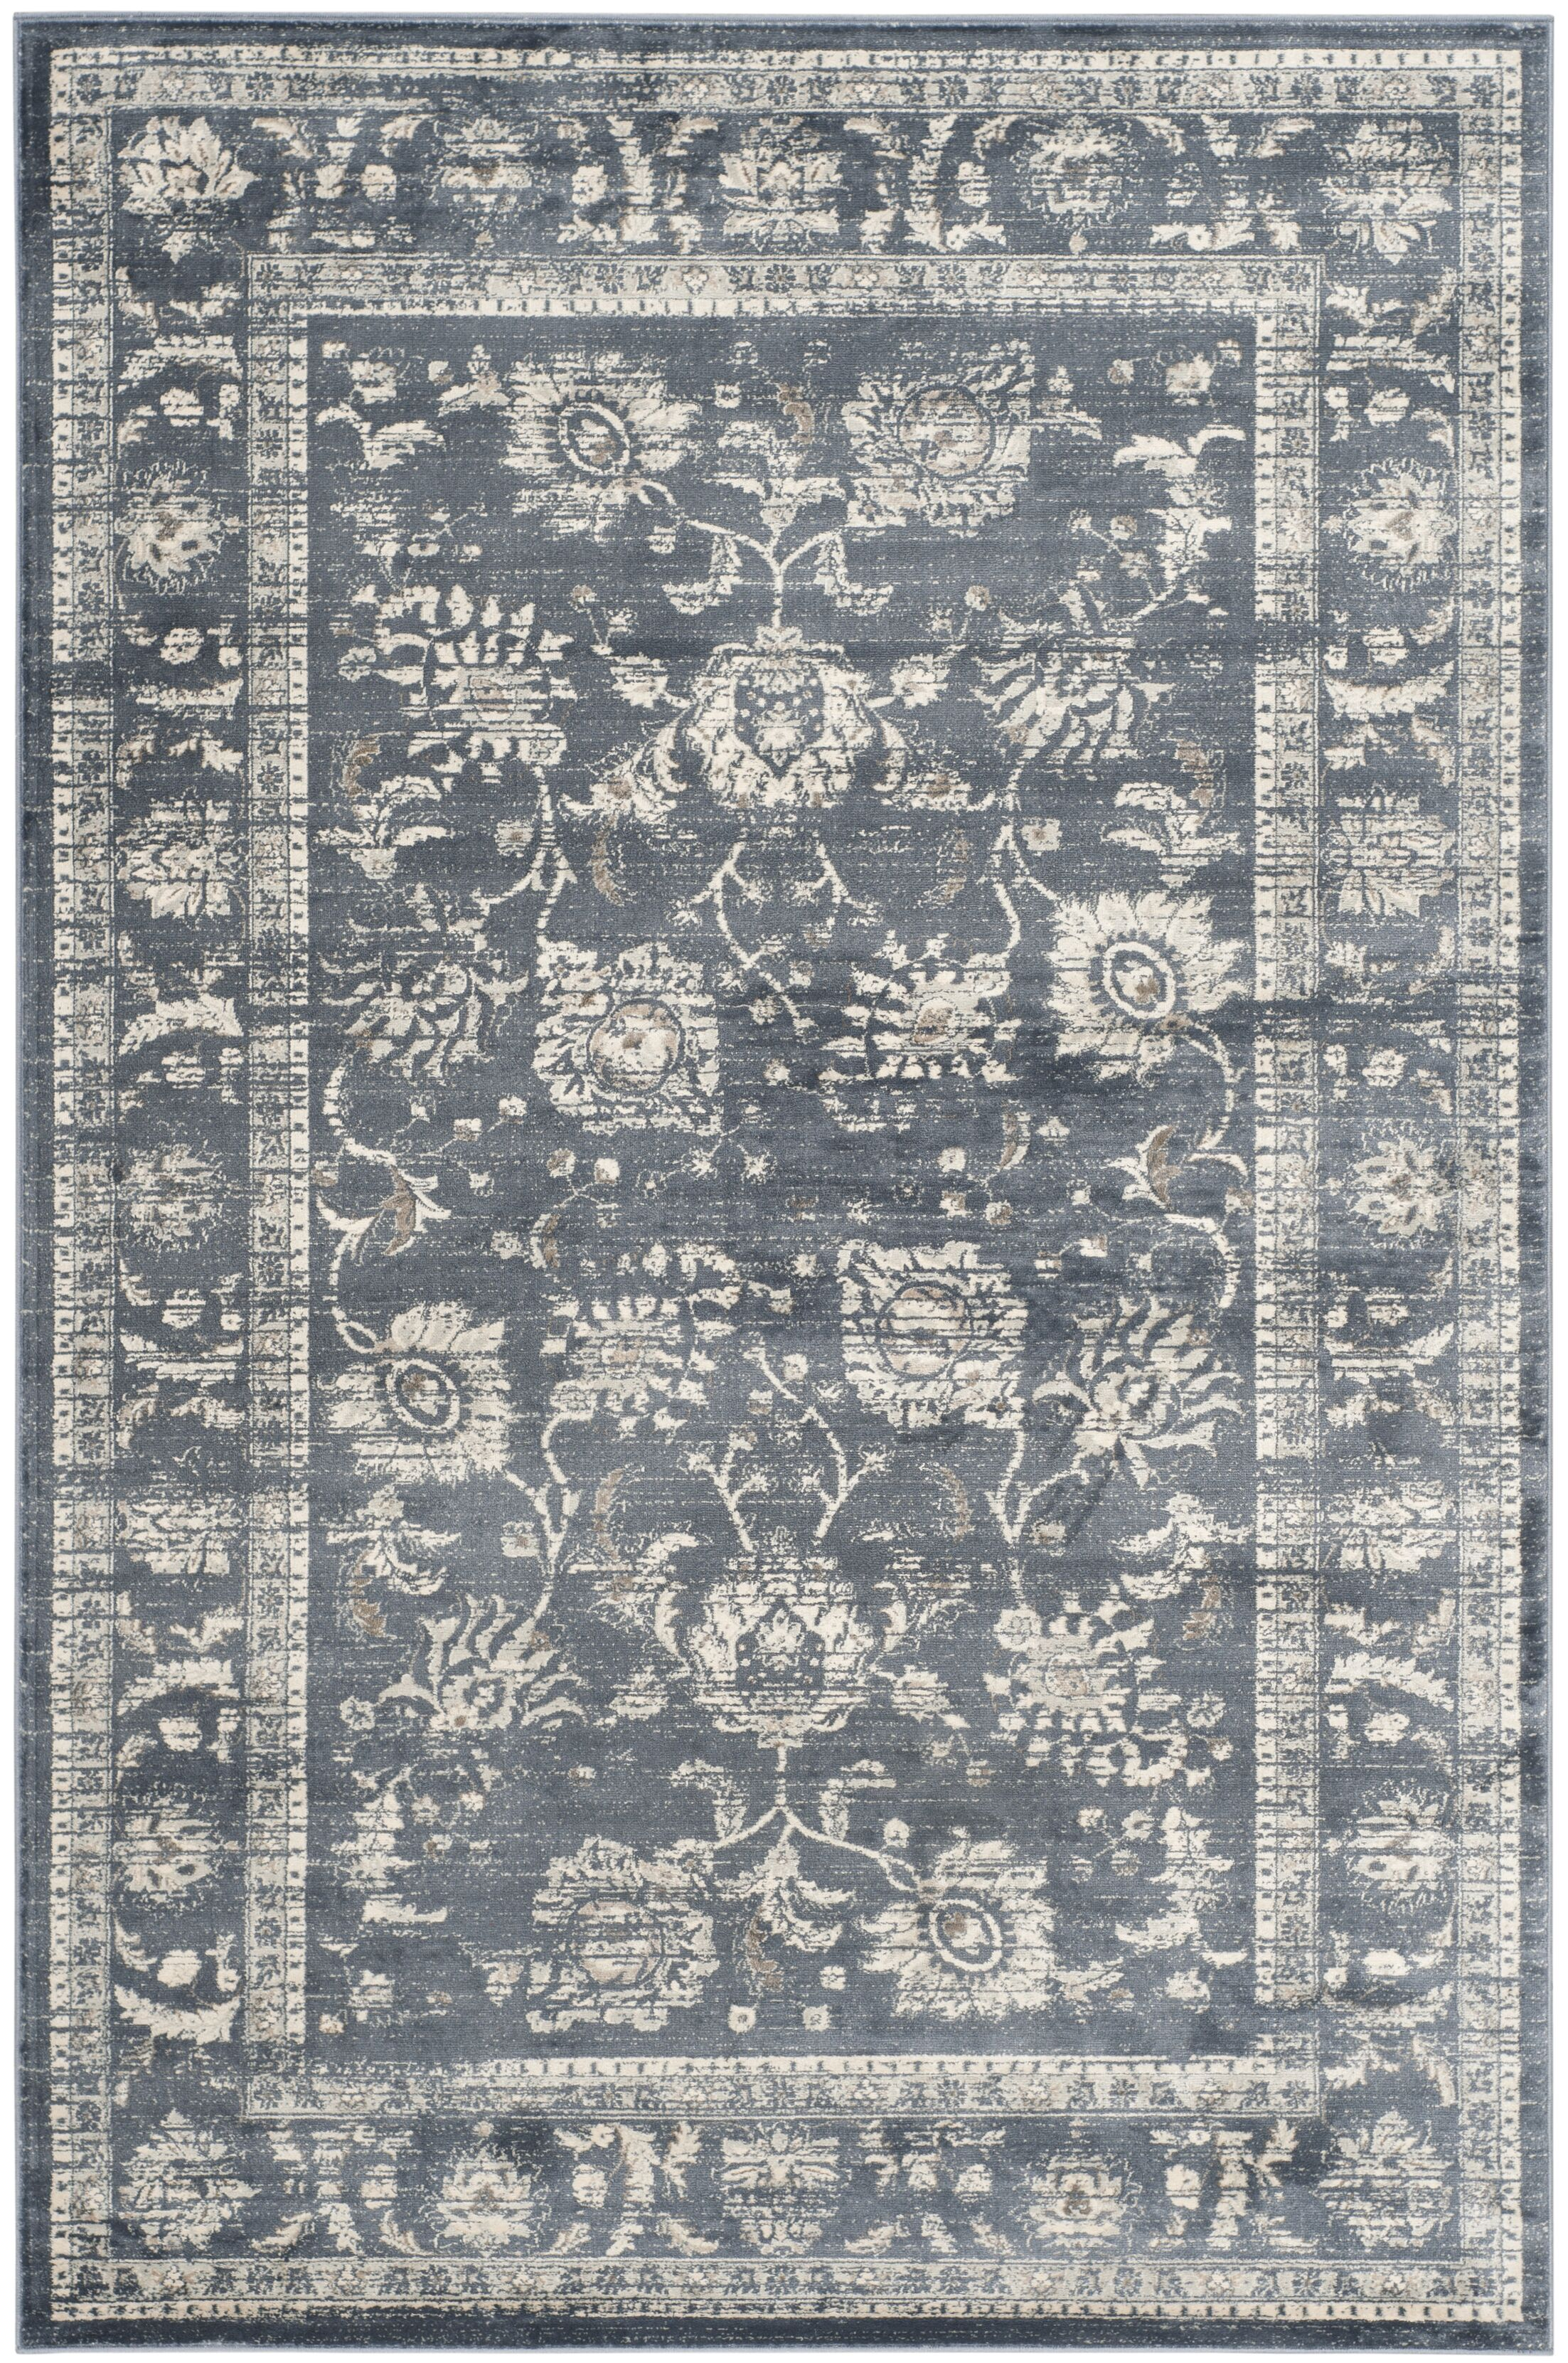 Bainsby Dark Grey / Cream Area Rug Rug Size: Rectangle 8' x 10'